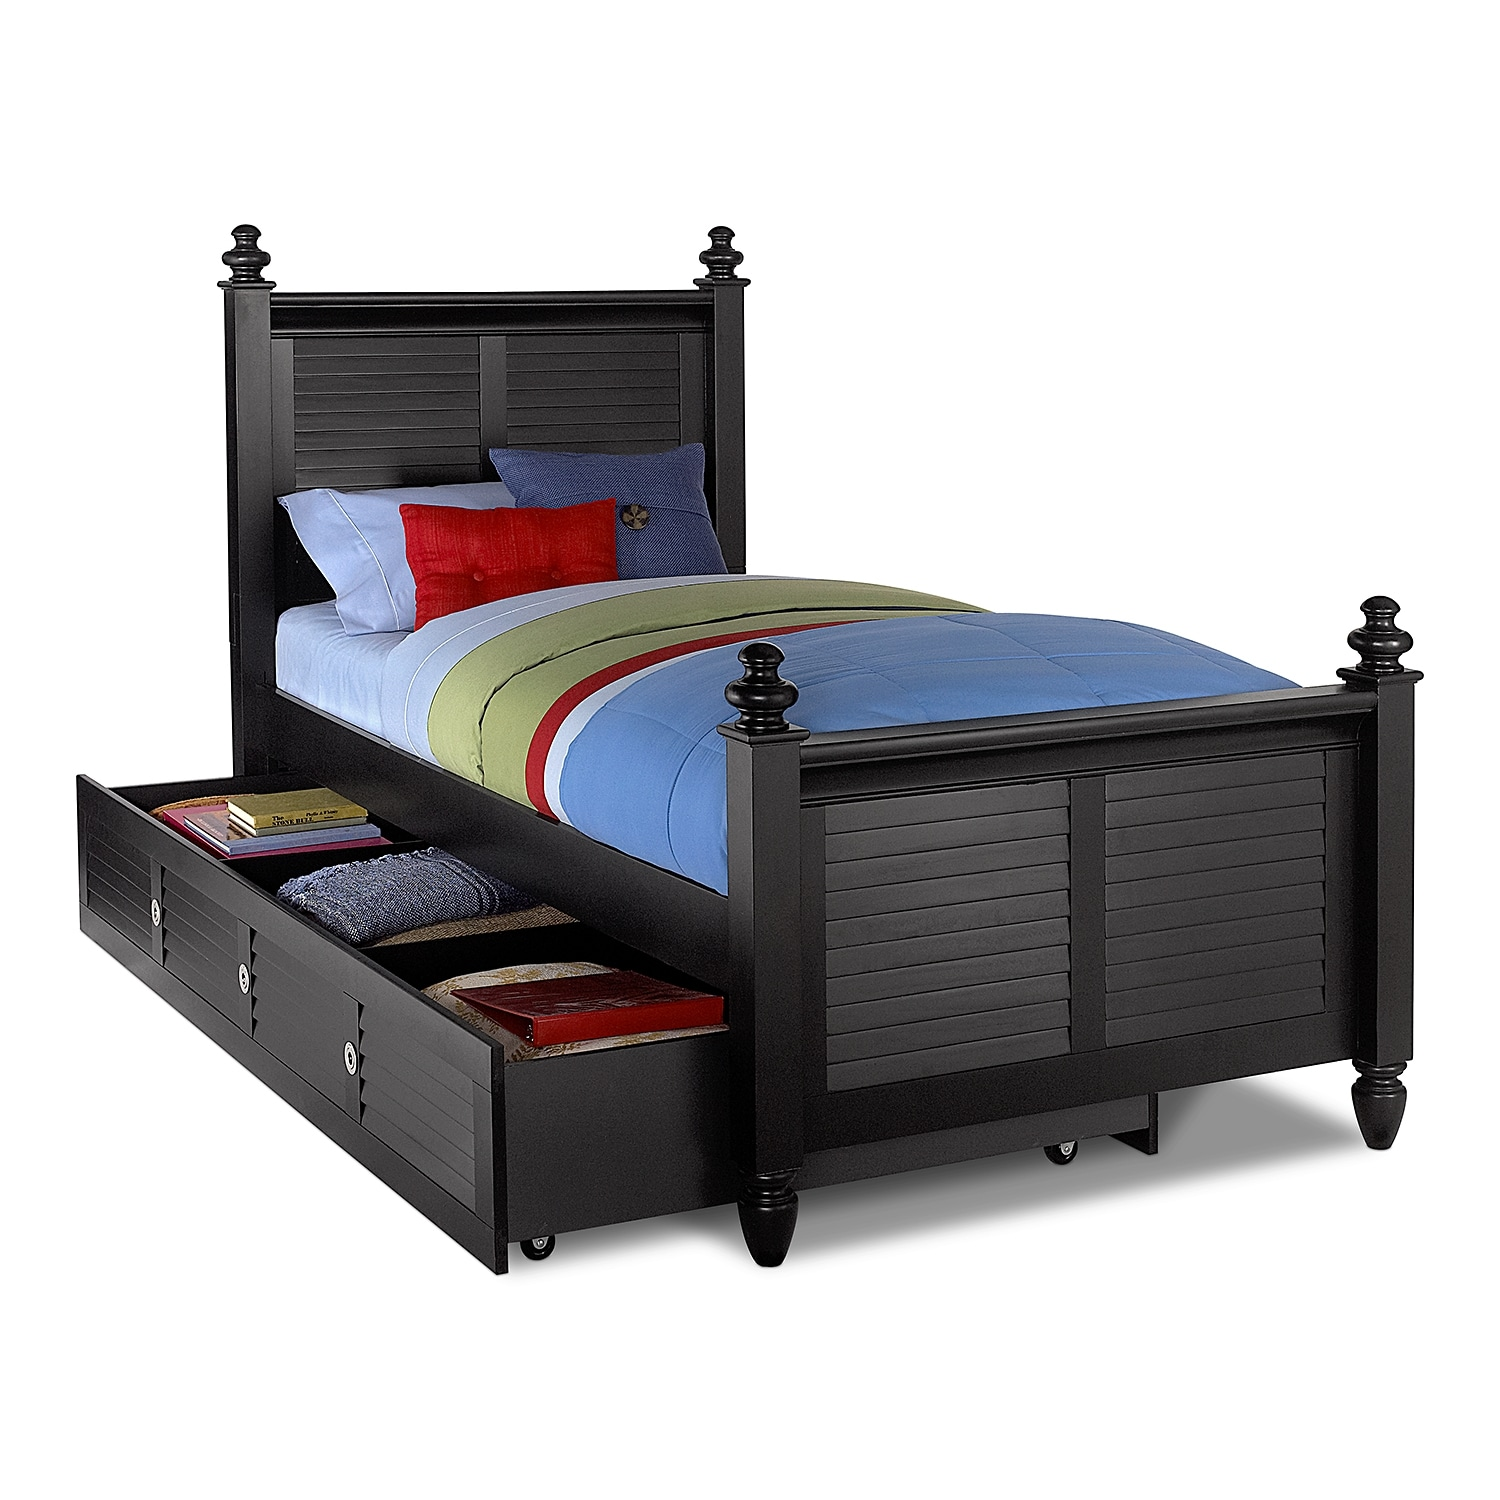 Seaside Twin Bed with Trundle - Black | Value City Furniture